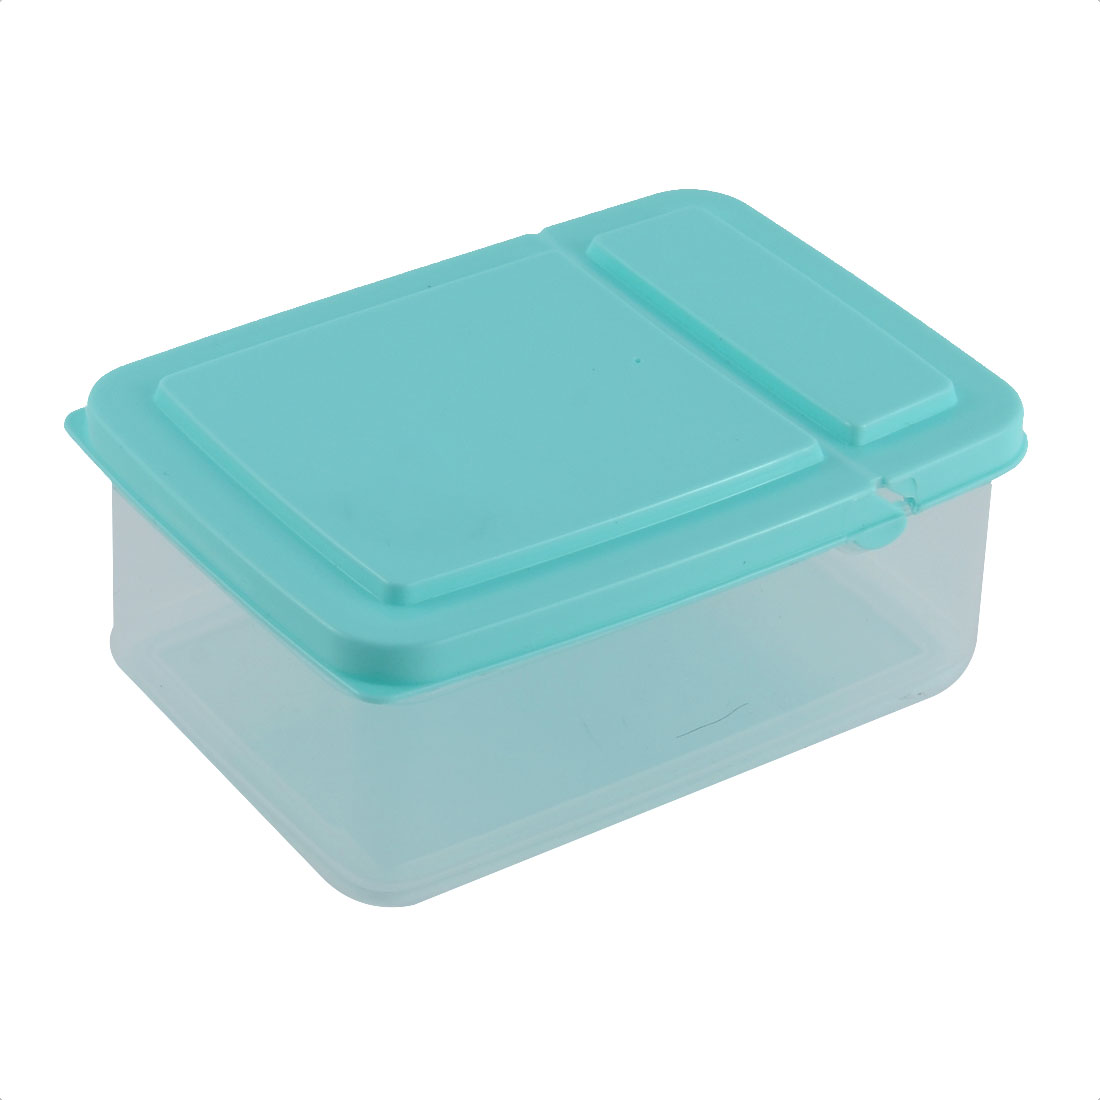 Kitchenware Pantry Refrigerator Freezer Plastic Transparent Storage Box Food Saver Blue